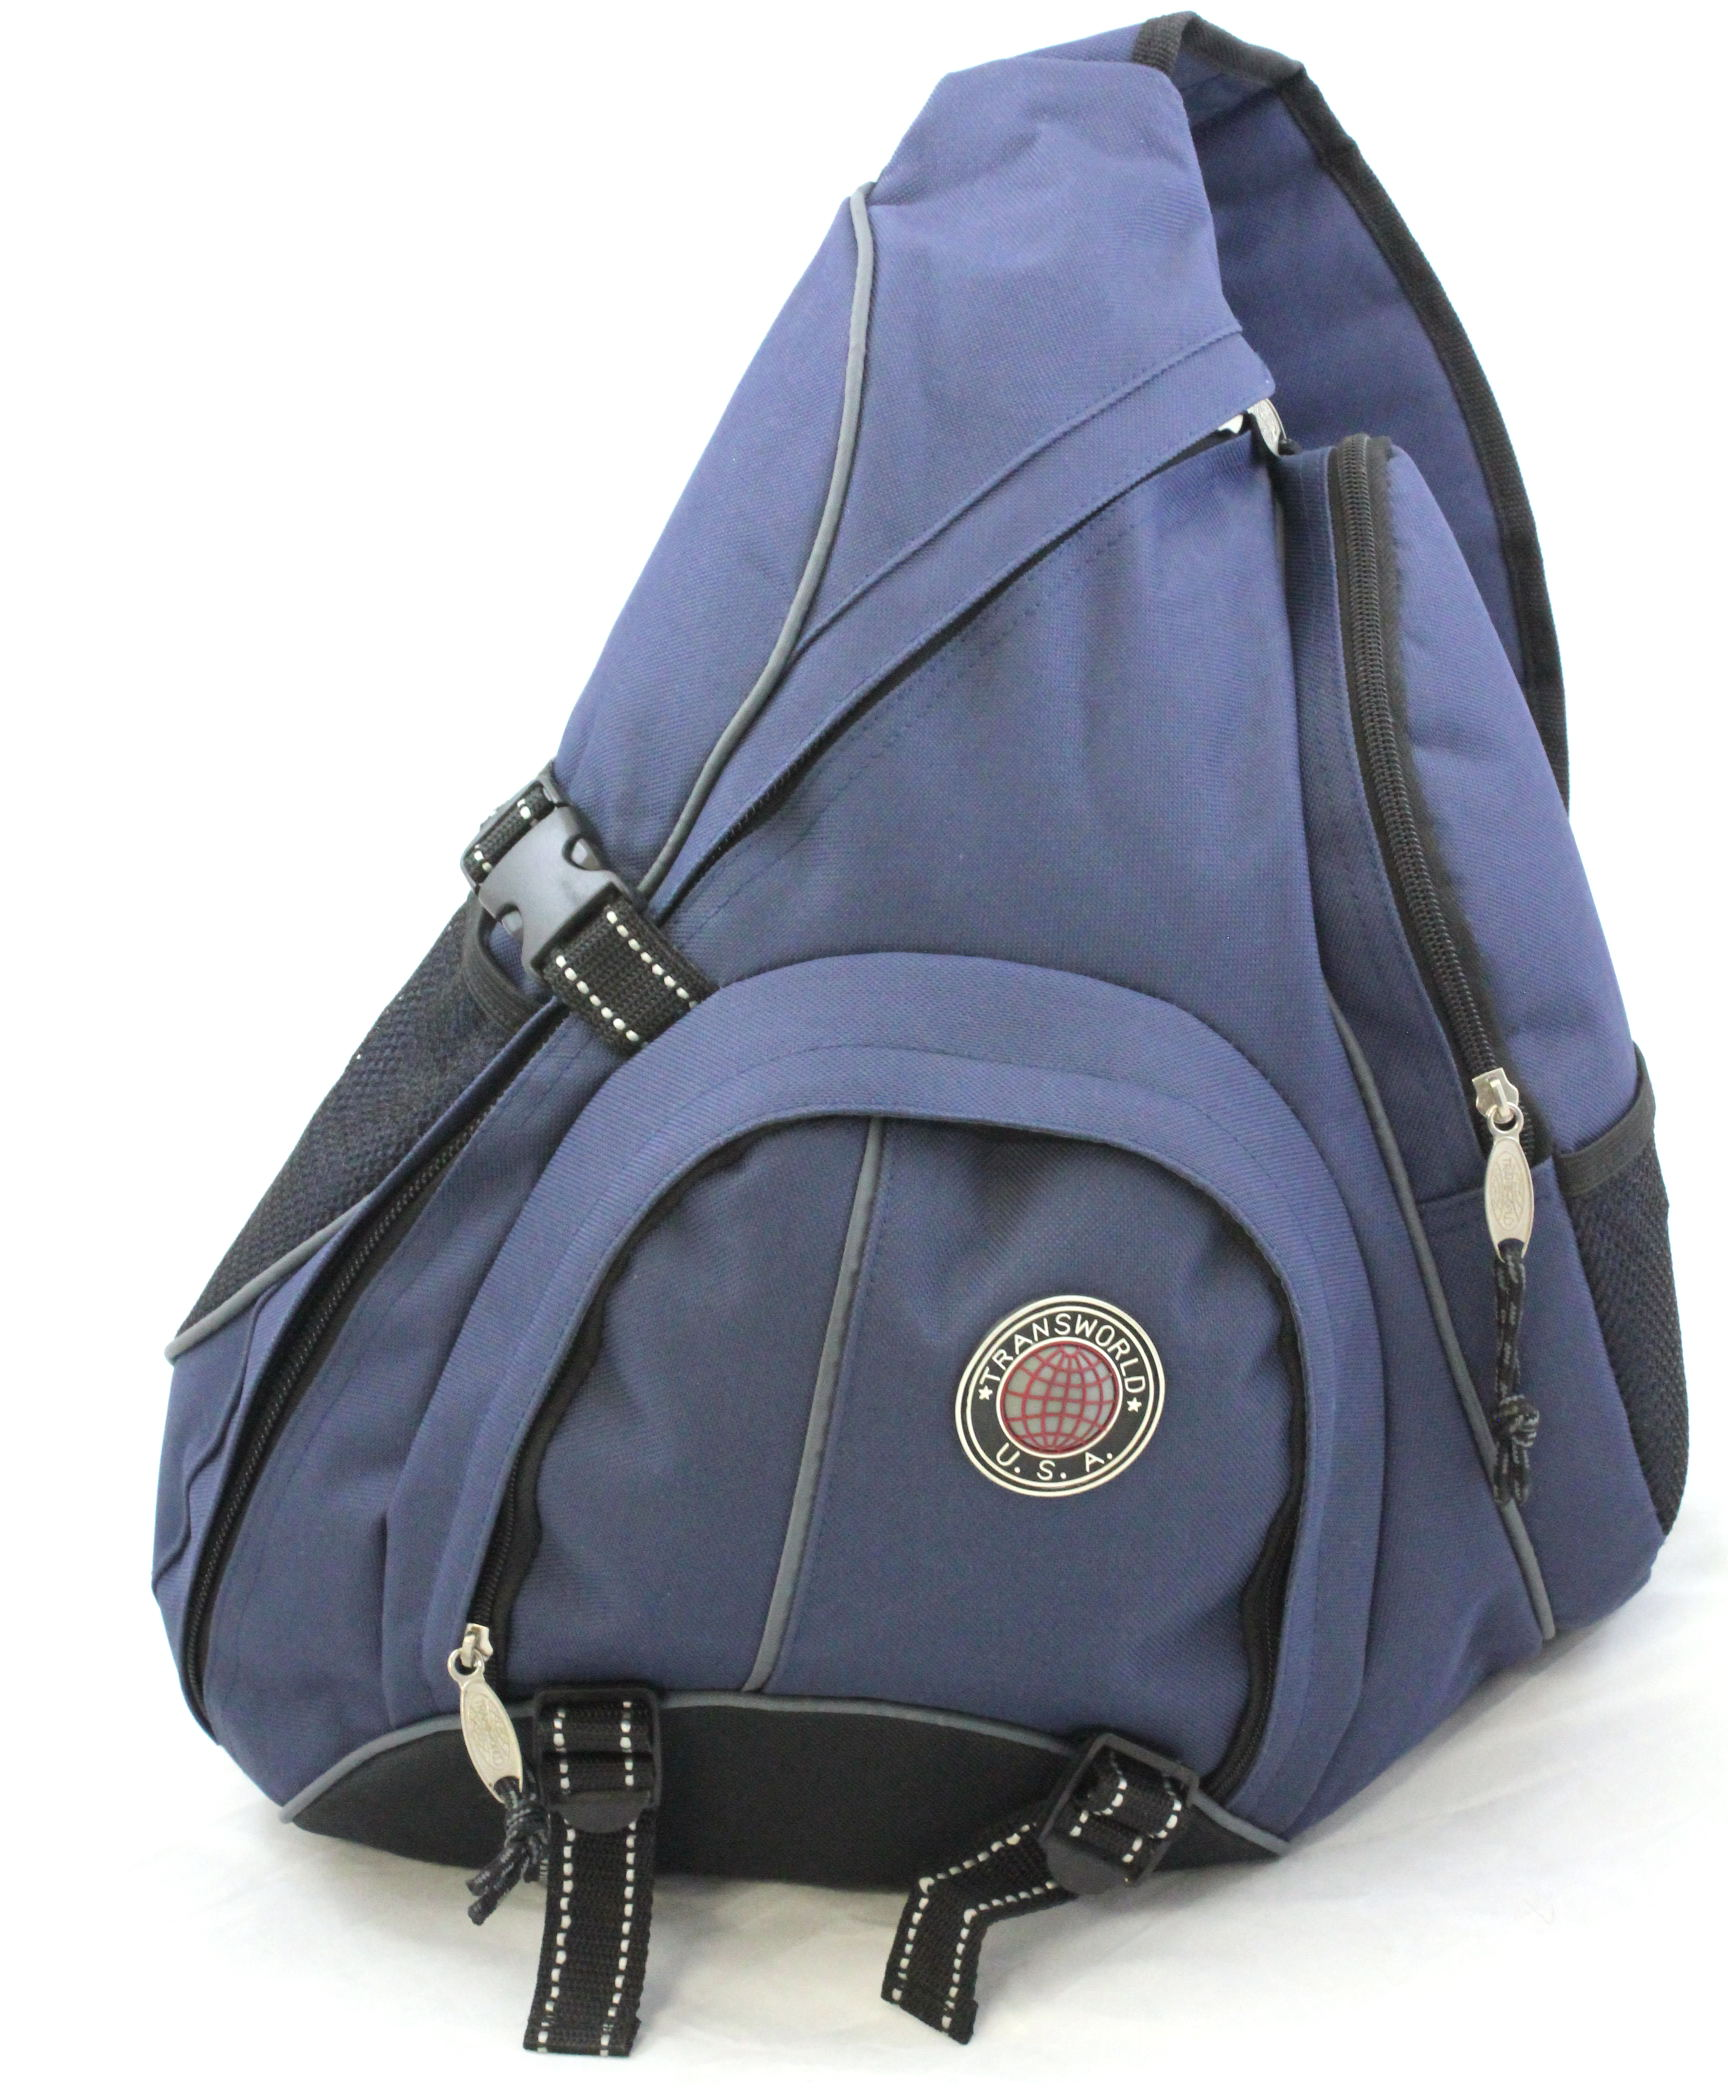 Shop for Shoulder Bags at REI - FREE SHIPPING With $50 minimum purchase. Top quality, great selection and expert advice you can trust. % Satisfaction Guarantee.